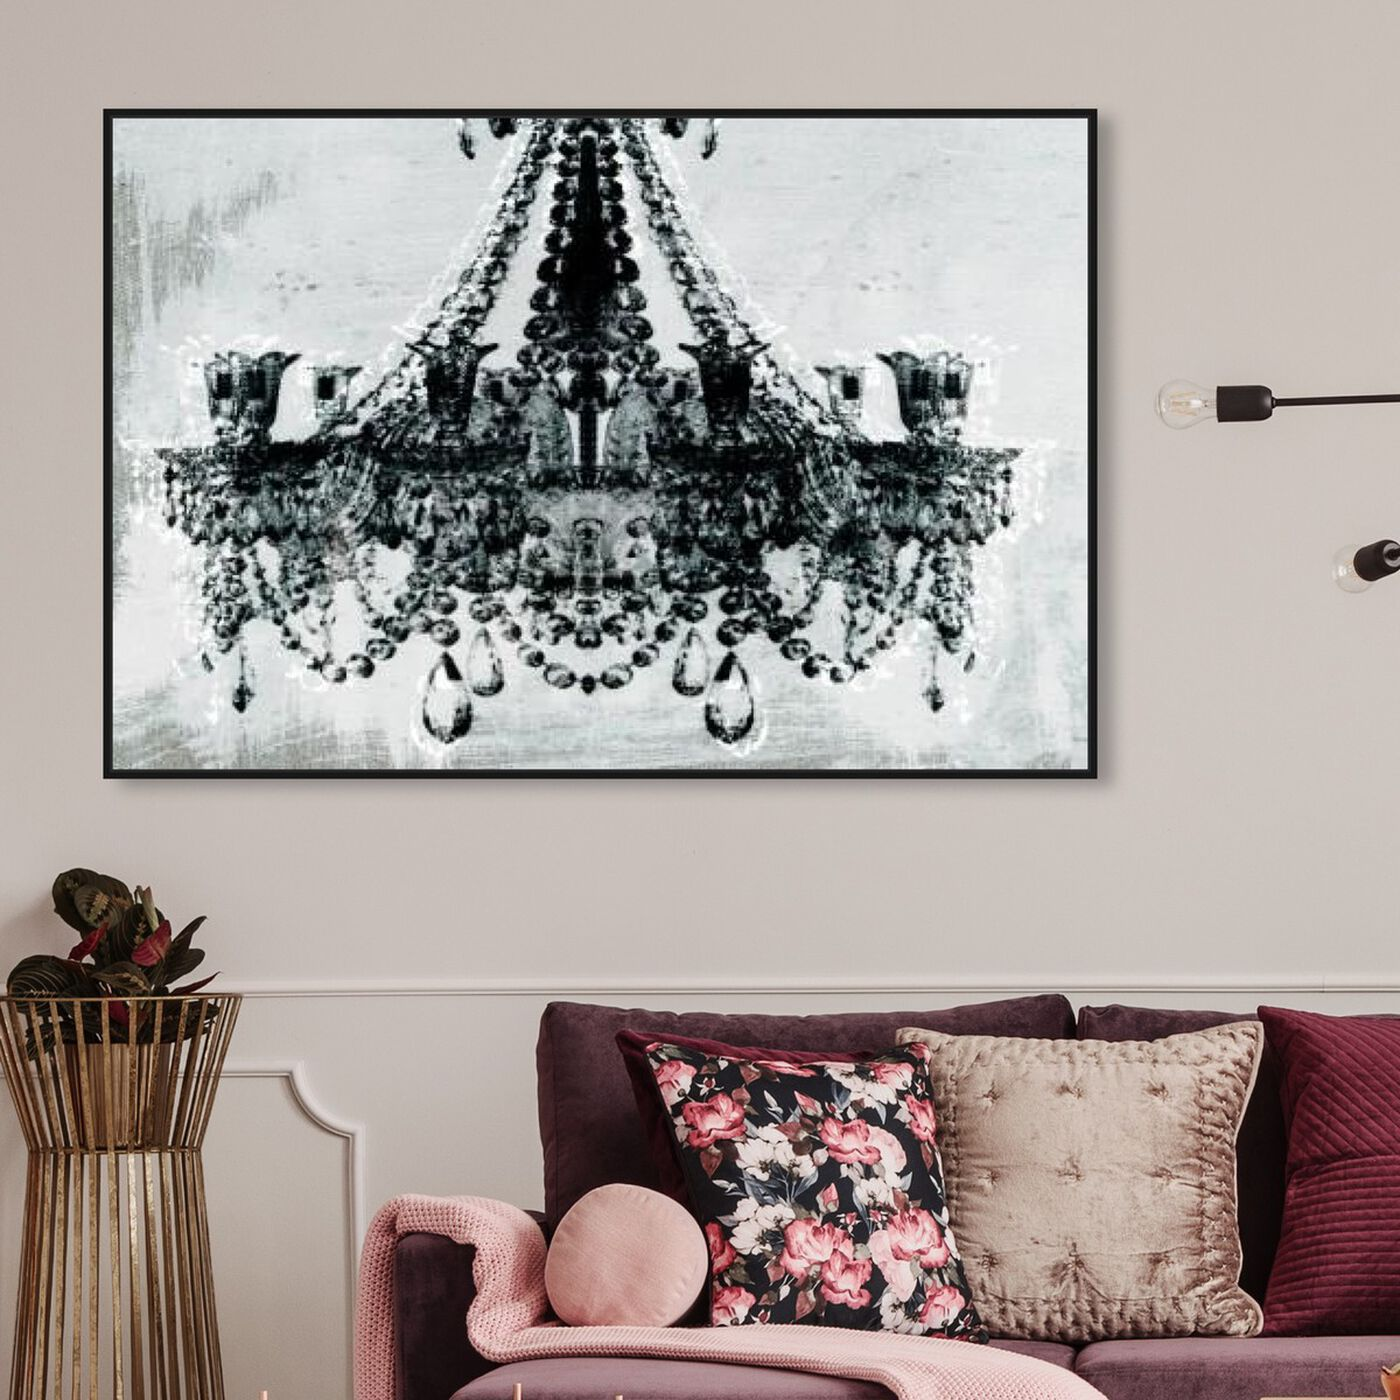 Hanging view of Dramatic Entrance featuring fashion and glam and chandeliers art.